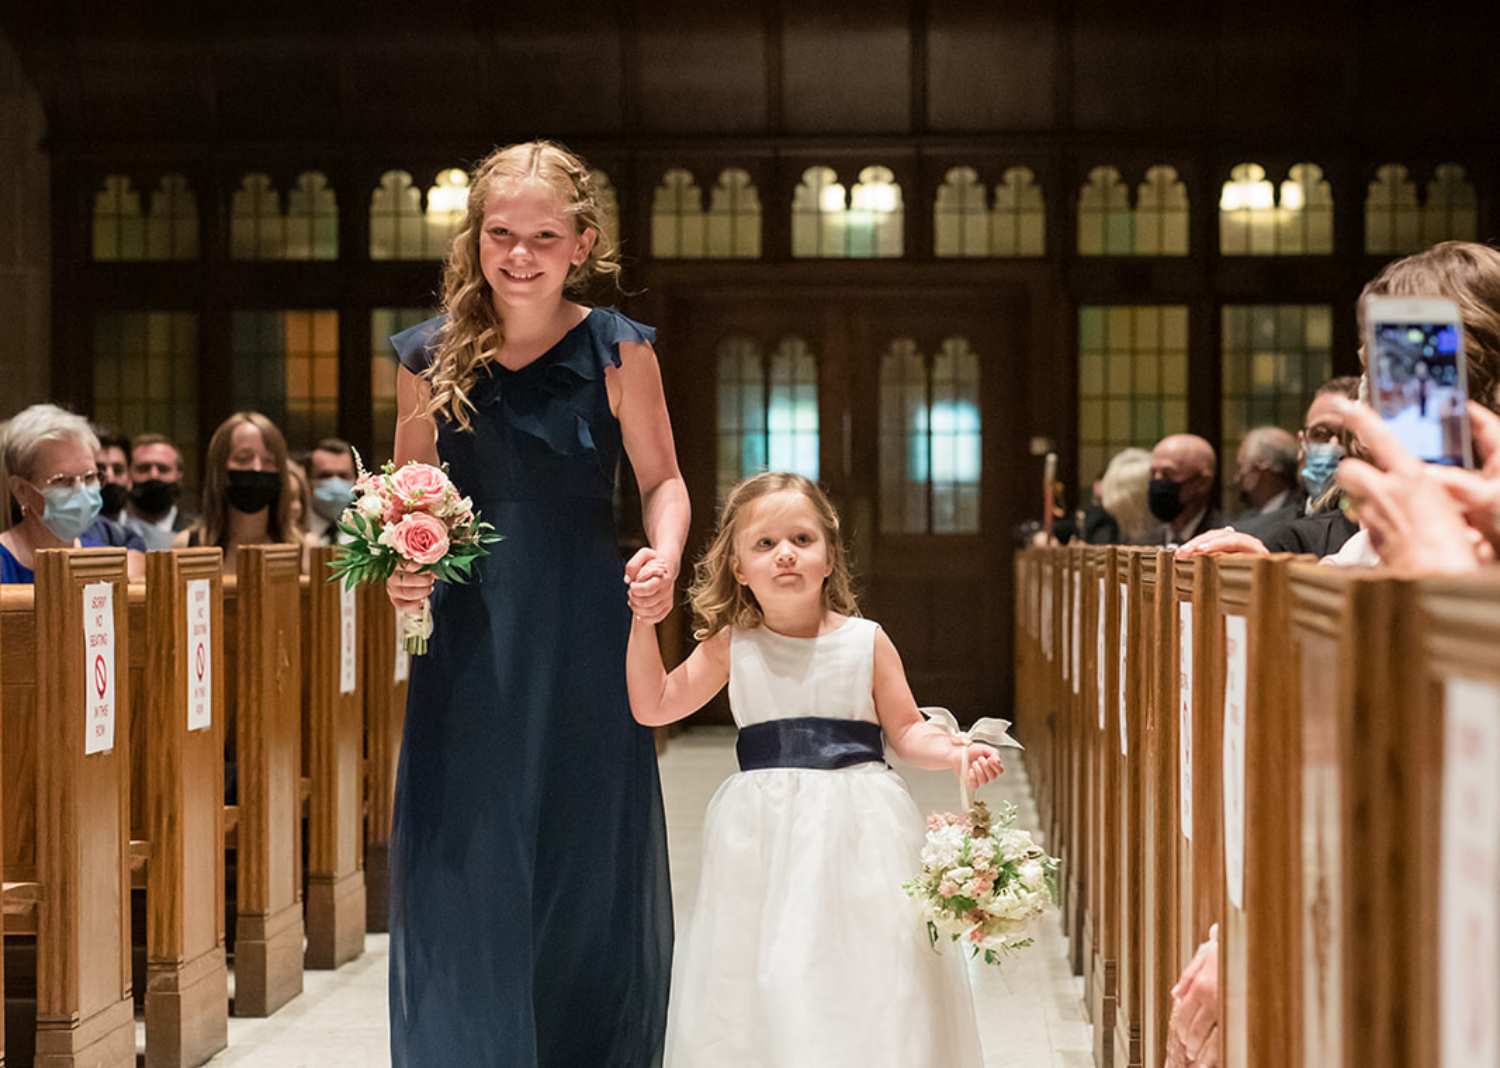 flower girls walking down the aisle of the wedding ceremony